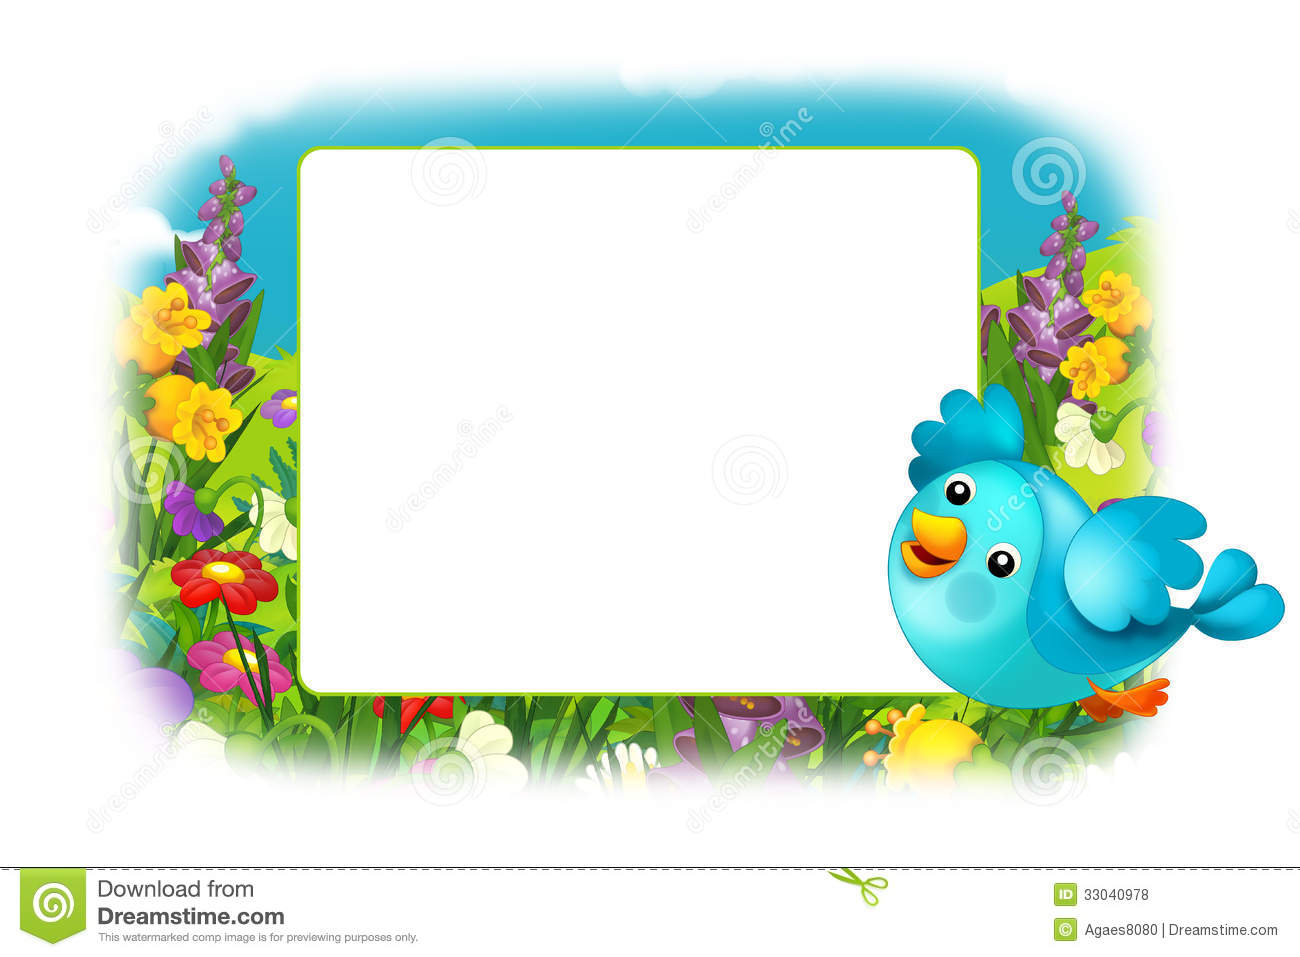 Fish Borders and Frames